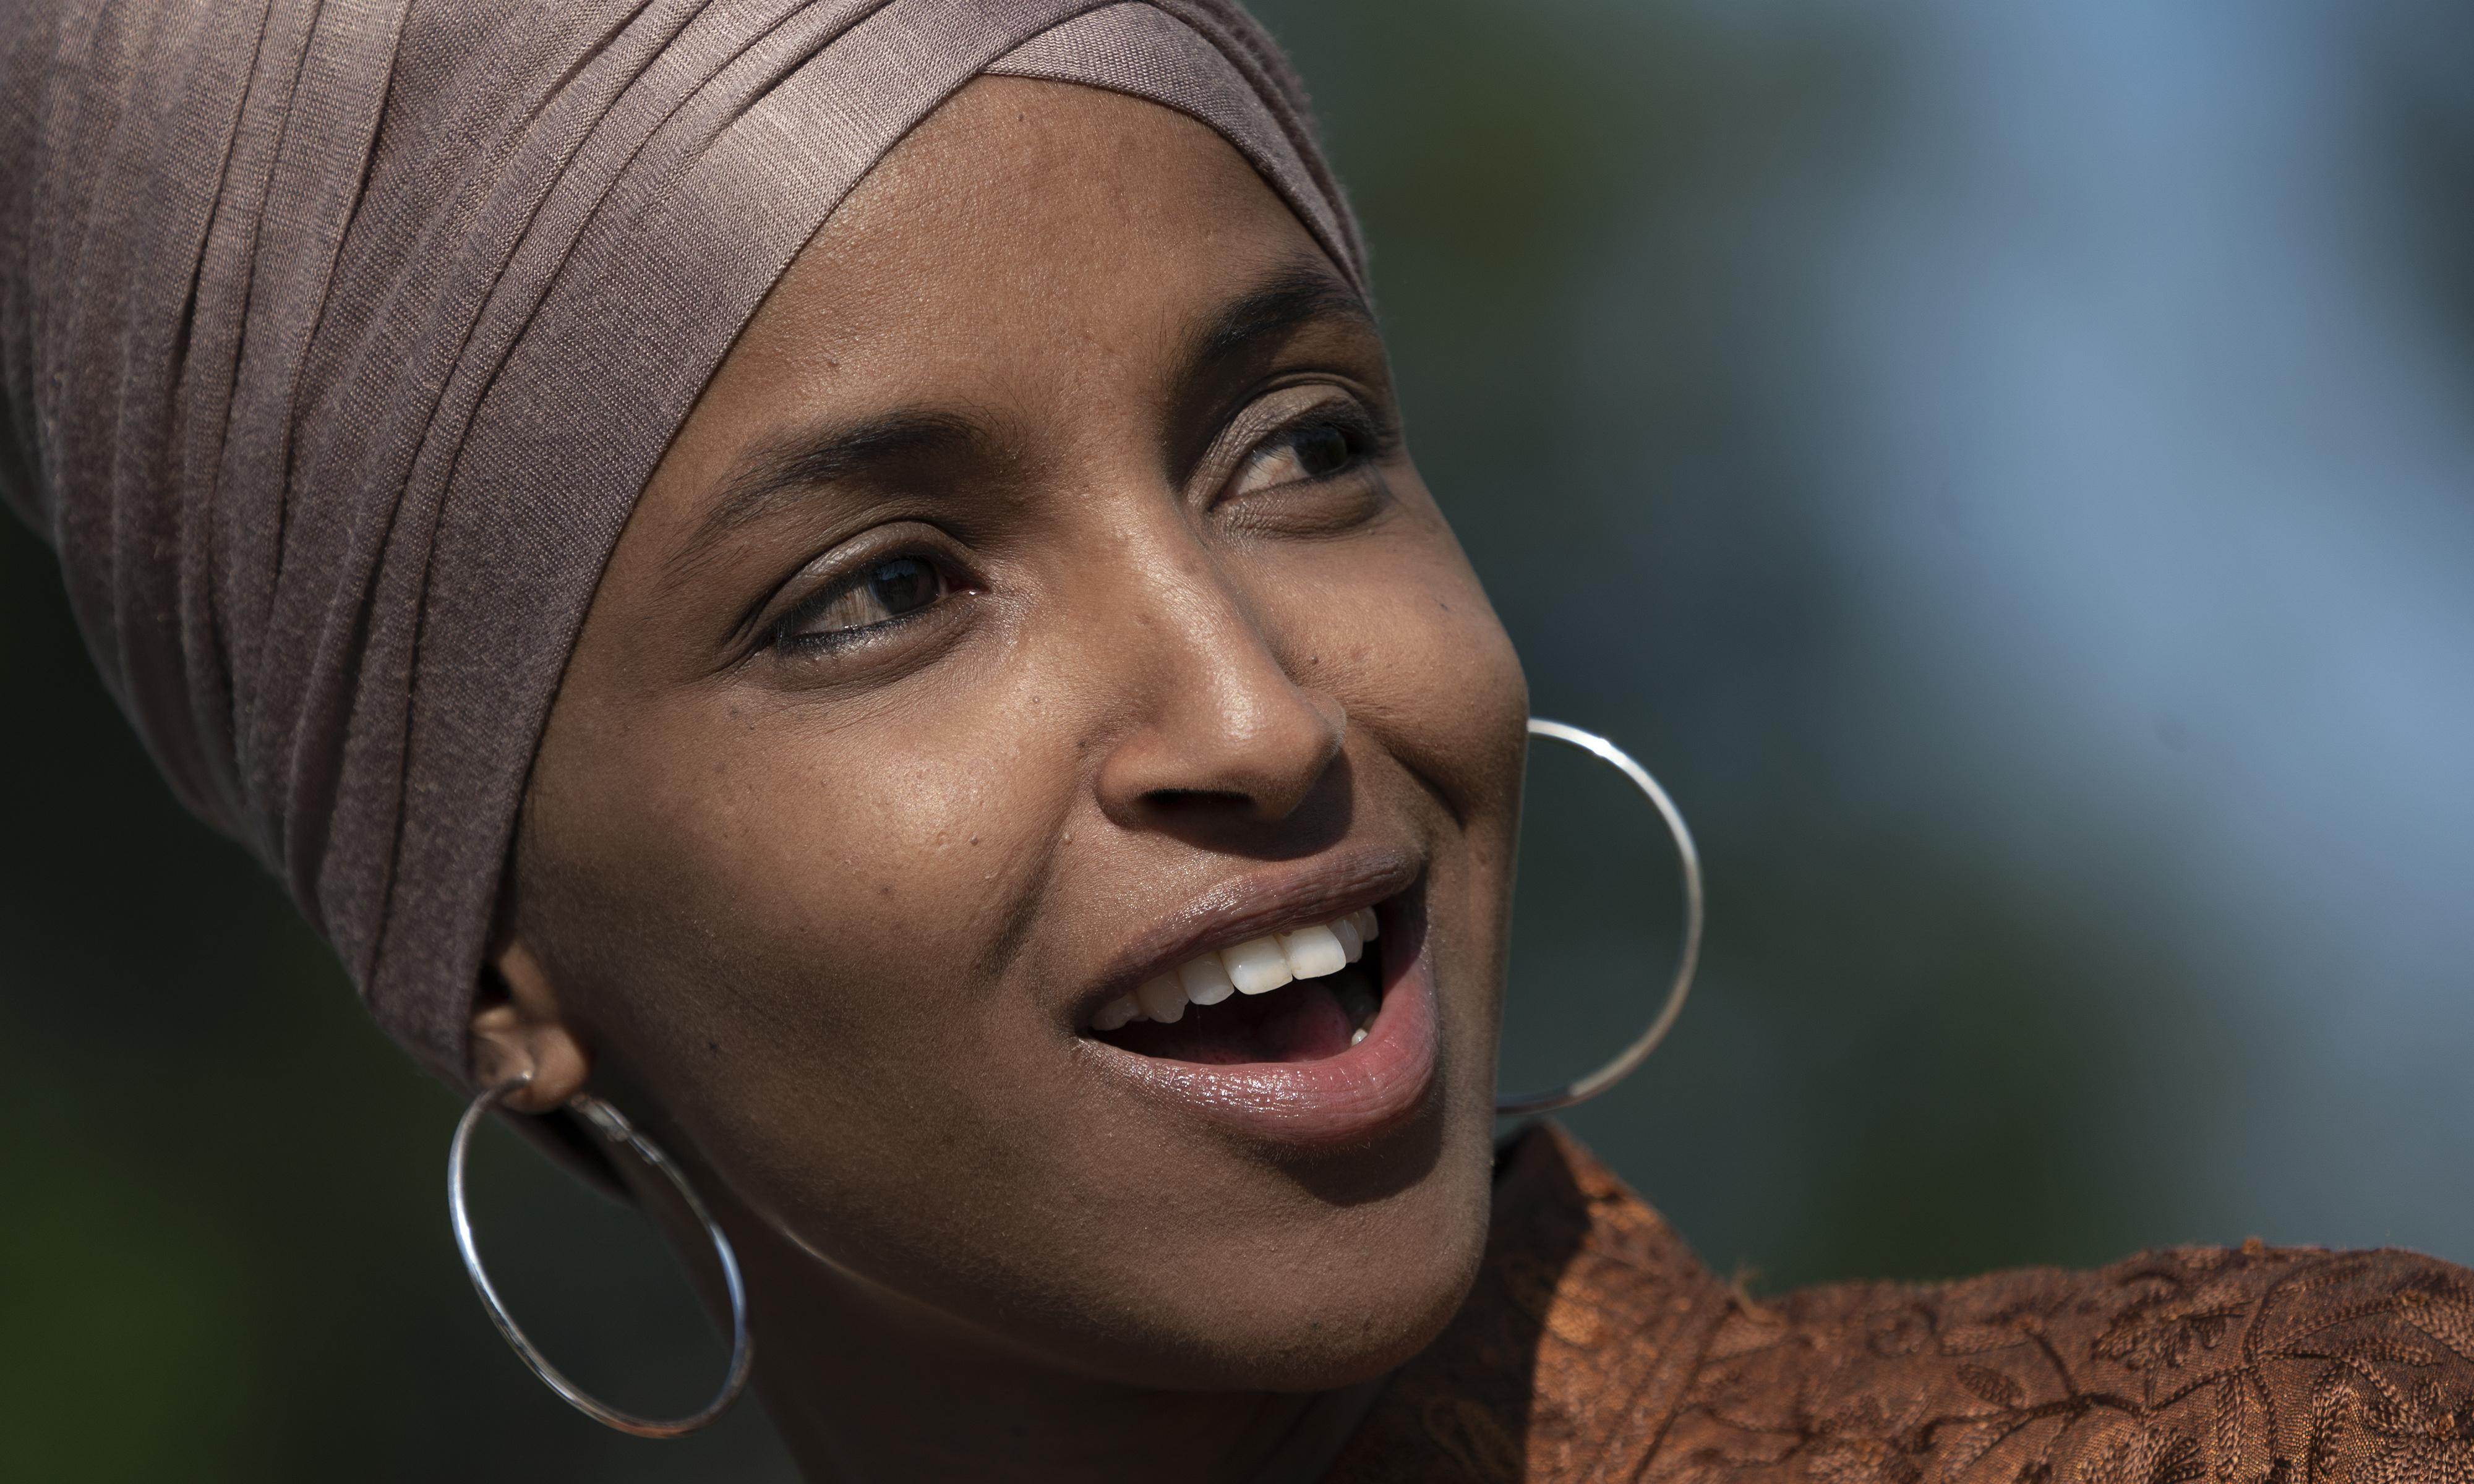 Ilhan Omar: Biden not right candidate for 'progress we all want to see'